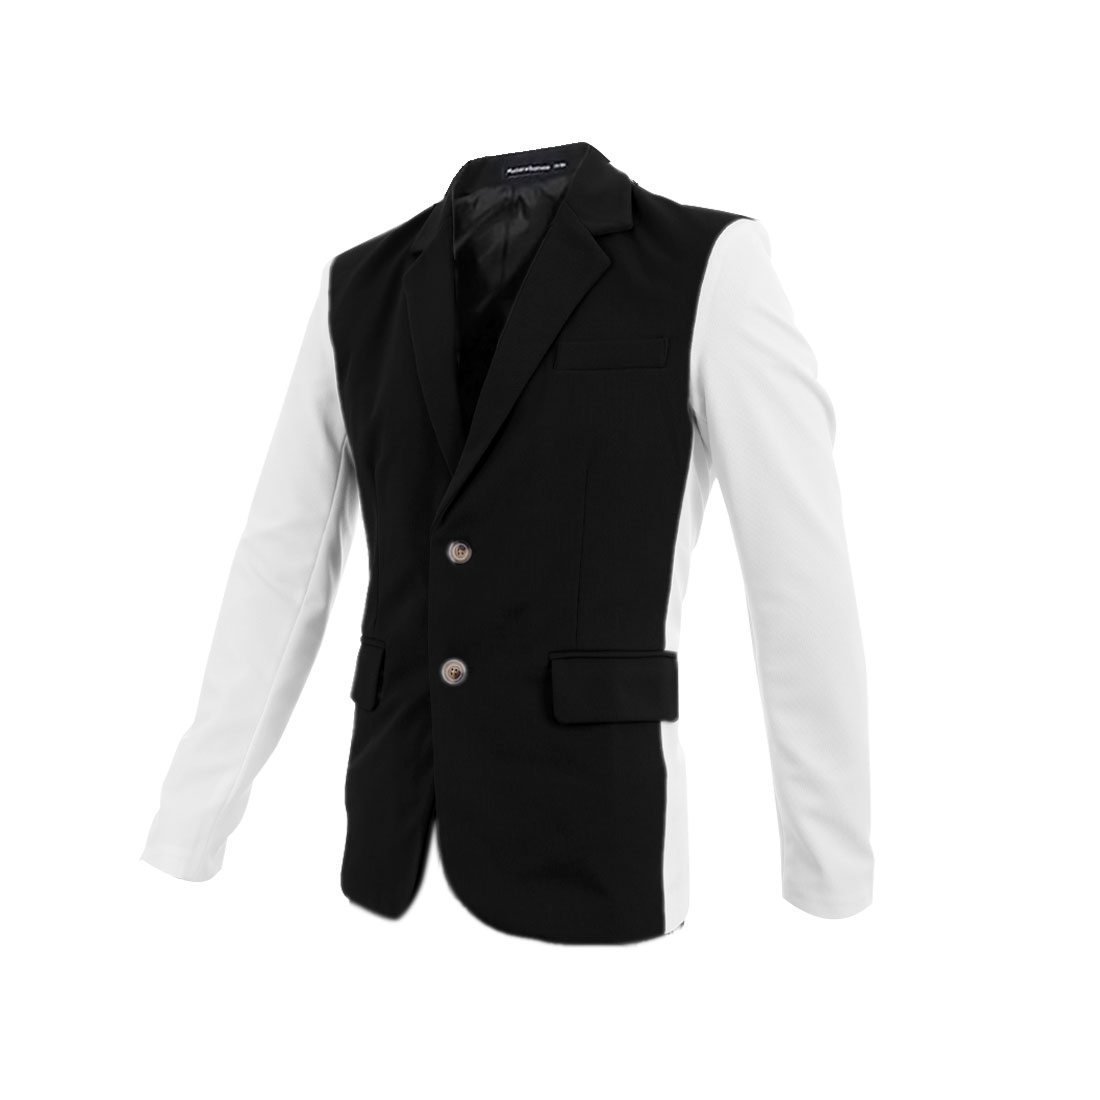 Man Notched Lapel Long Sleeve Contrast Color Black White Blazer Coat M